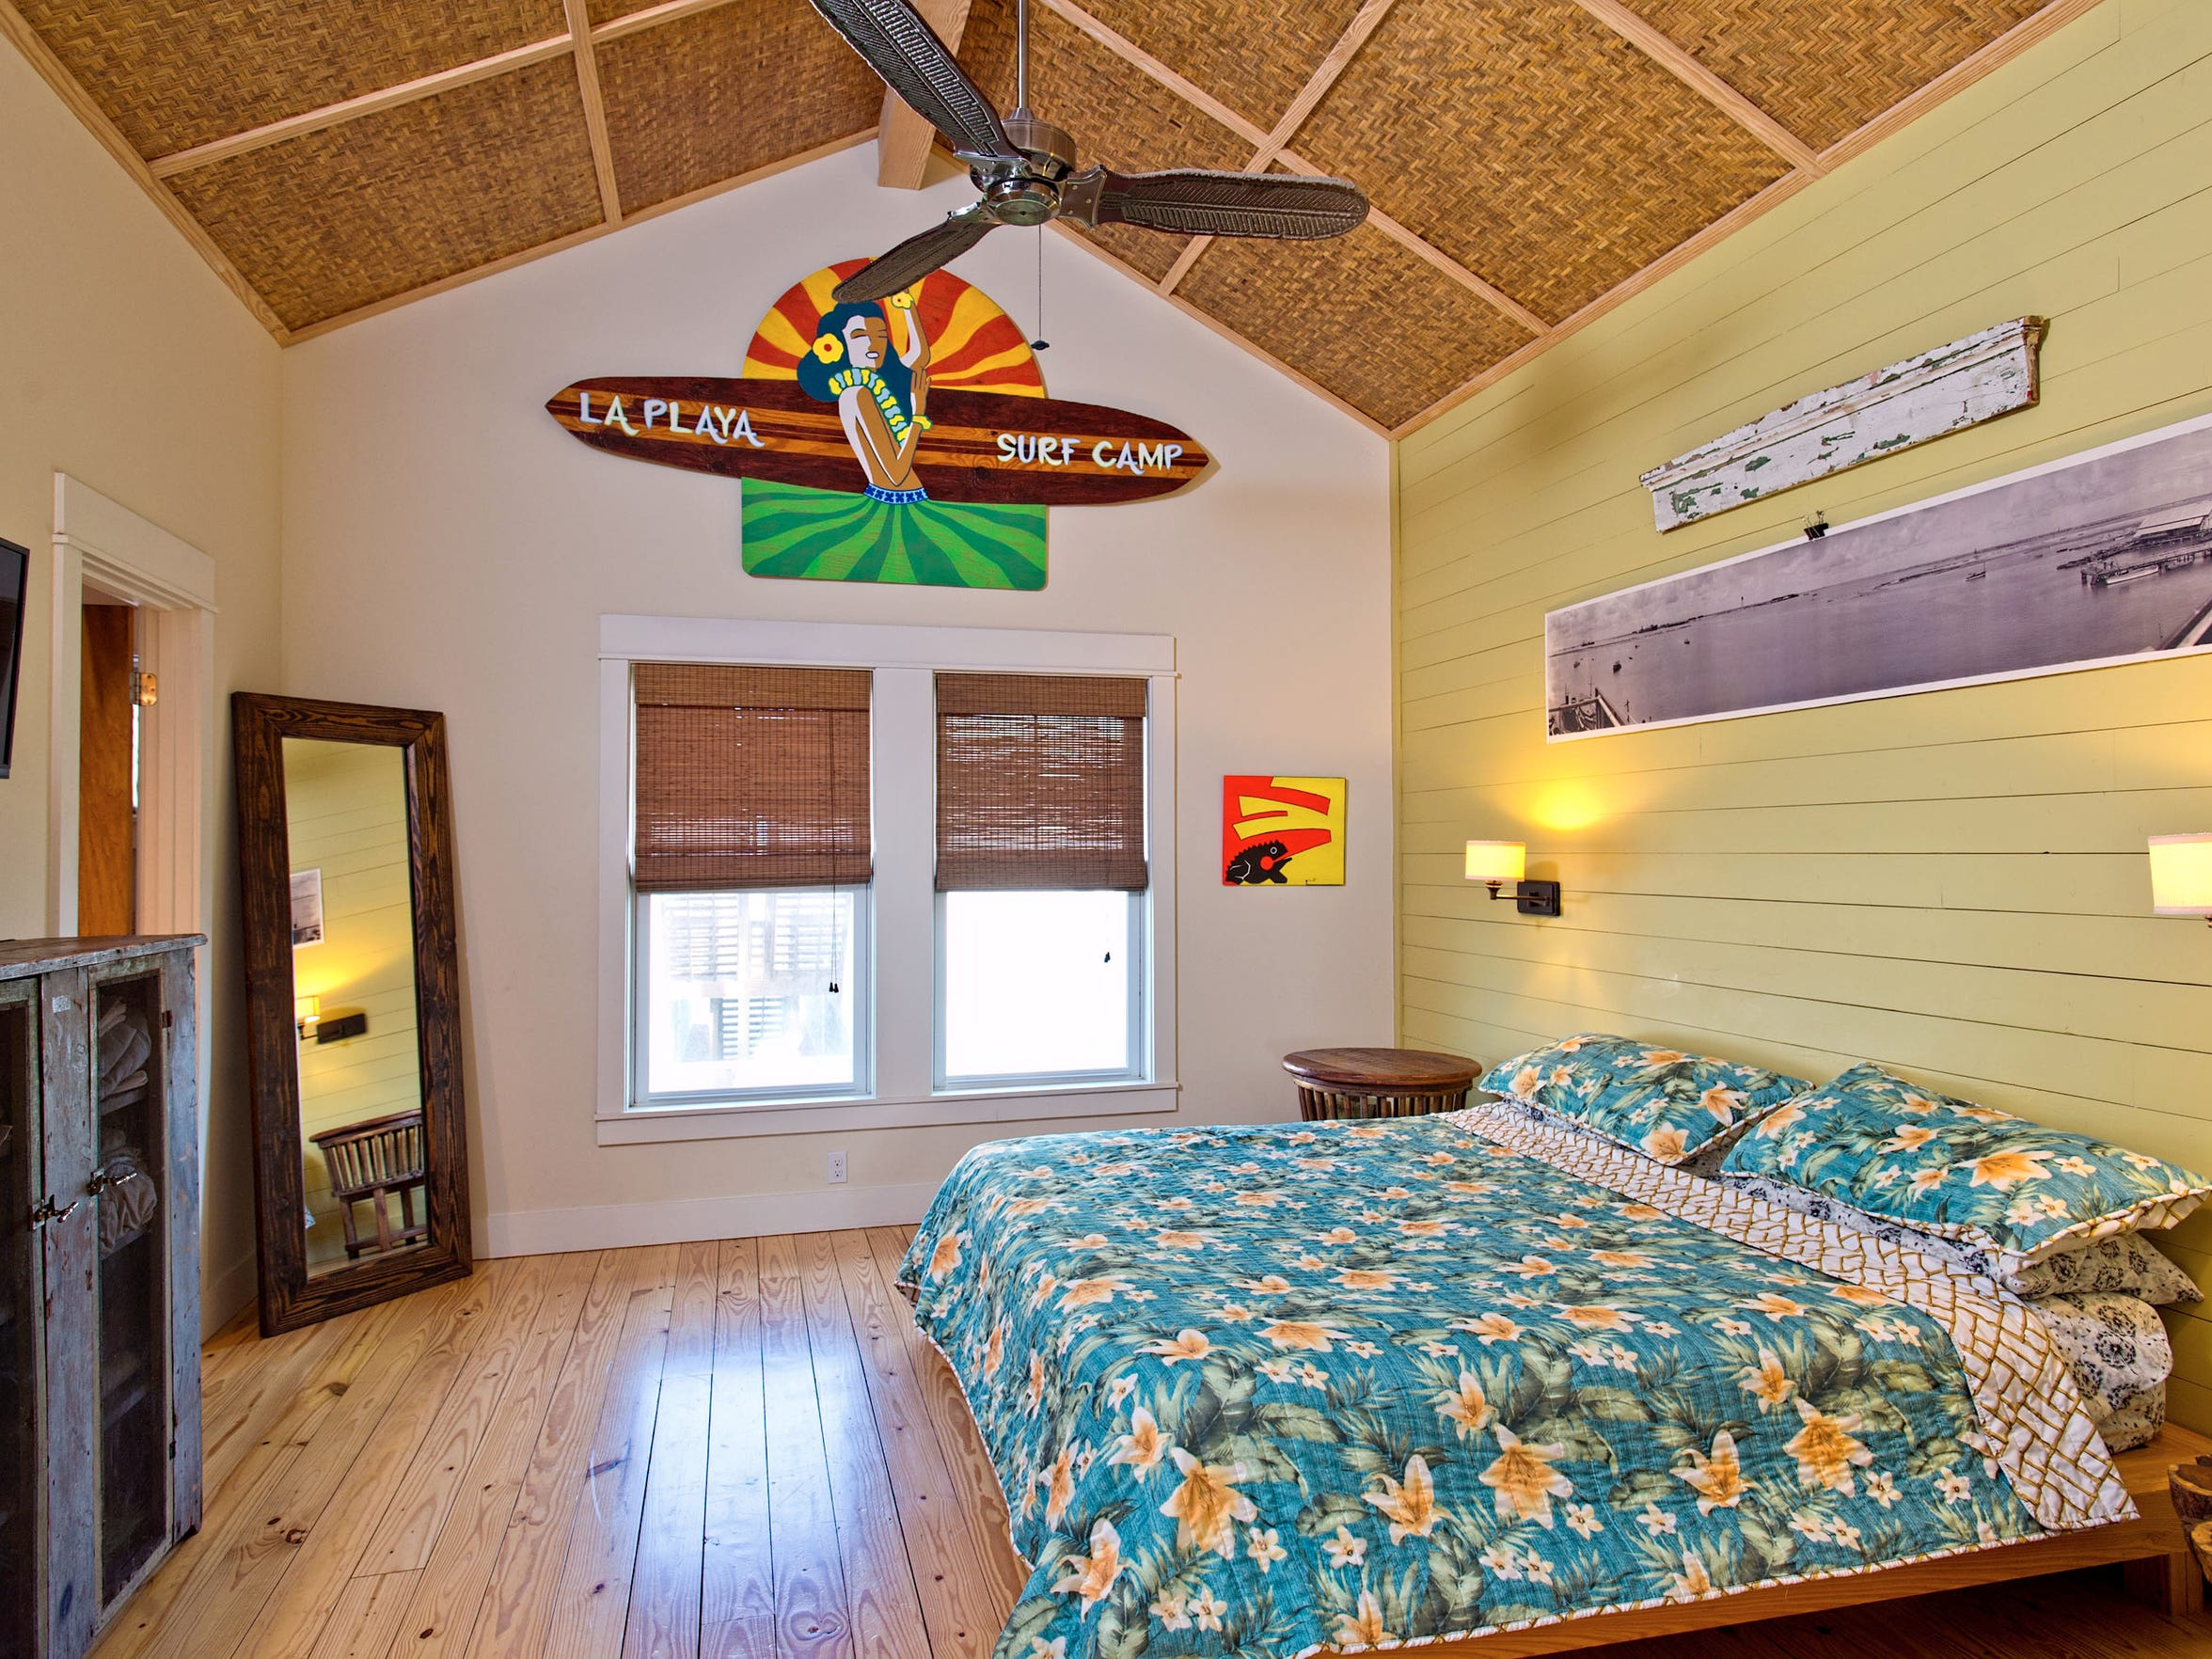 The master bedroom's bamboo covered high cathedral ceiling adds a Polynesian flair to the room which also has knotty pine wood plank flooring.